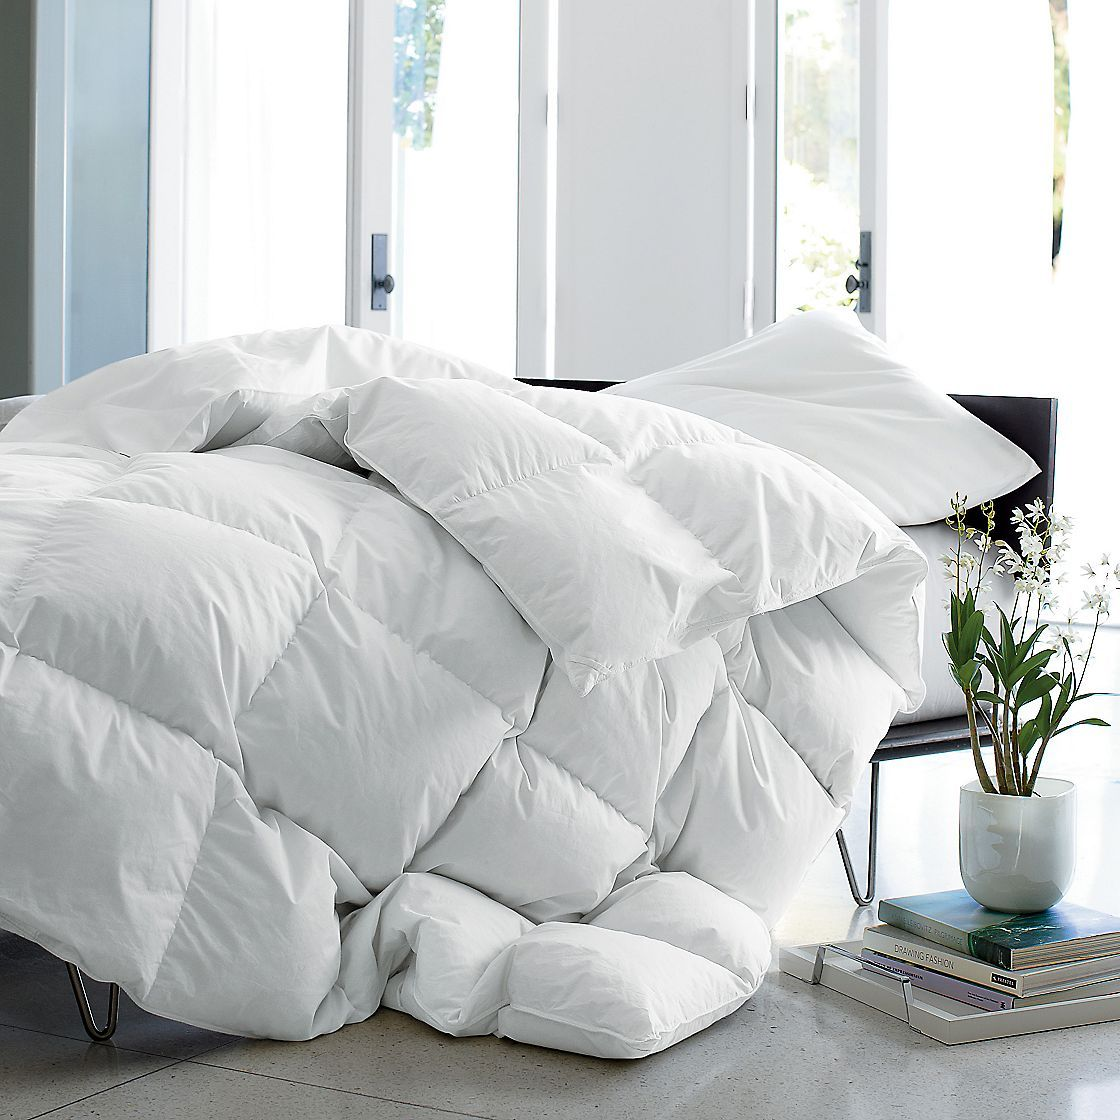 Voted Best Heavyweight Comforter By Real Simple Magazine White Down Comforter Down Comforter Duvet Comforters